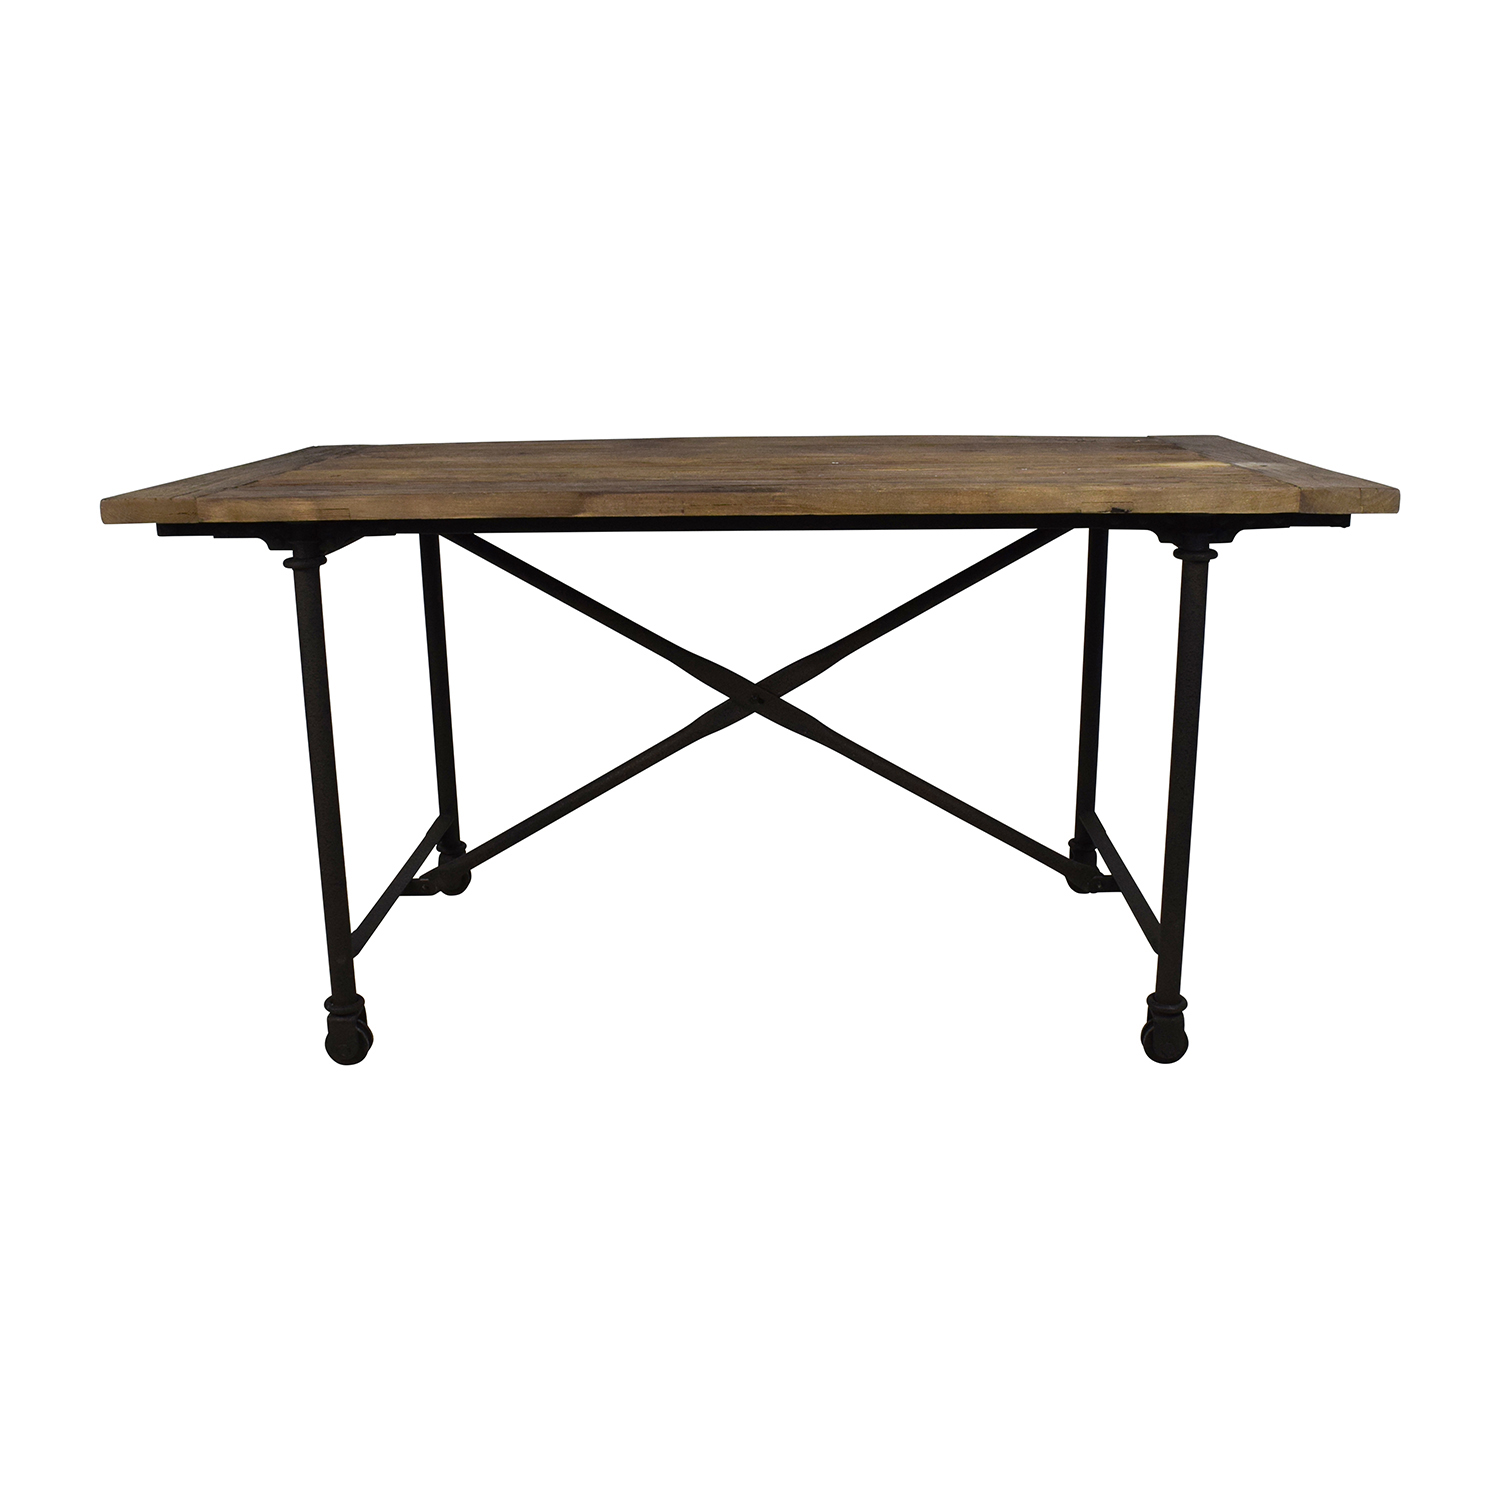 Restoration Hardware Reclaimed Natural Elm Dining Table Dinner Tables